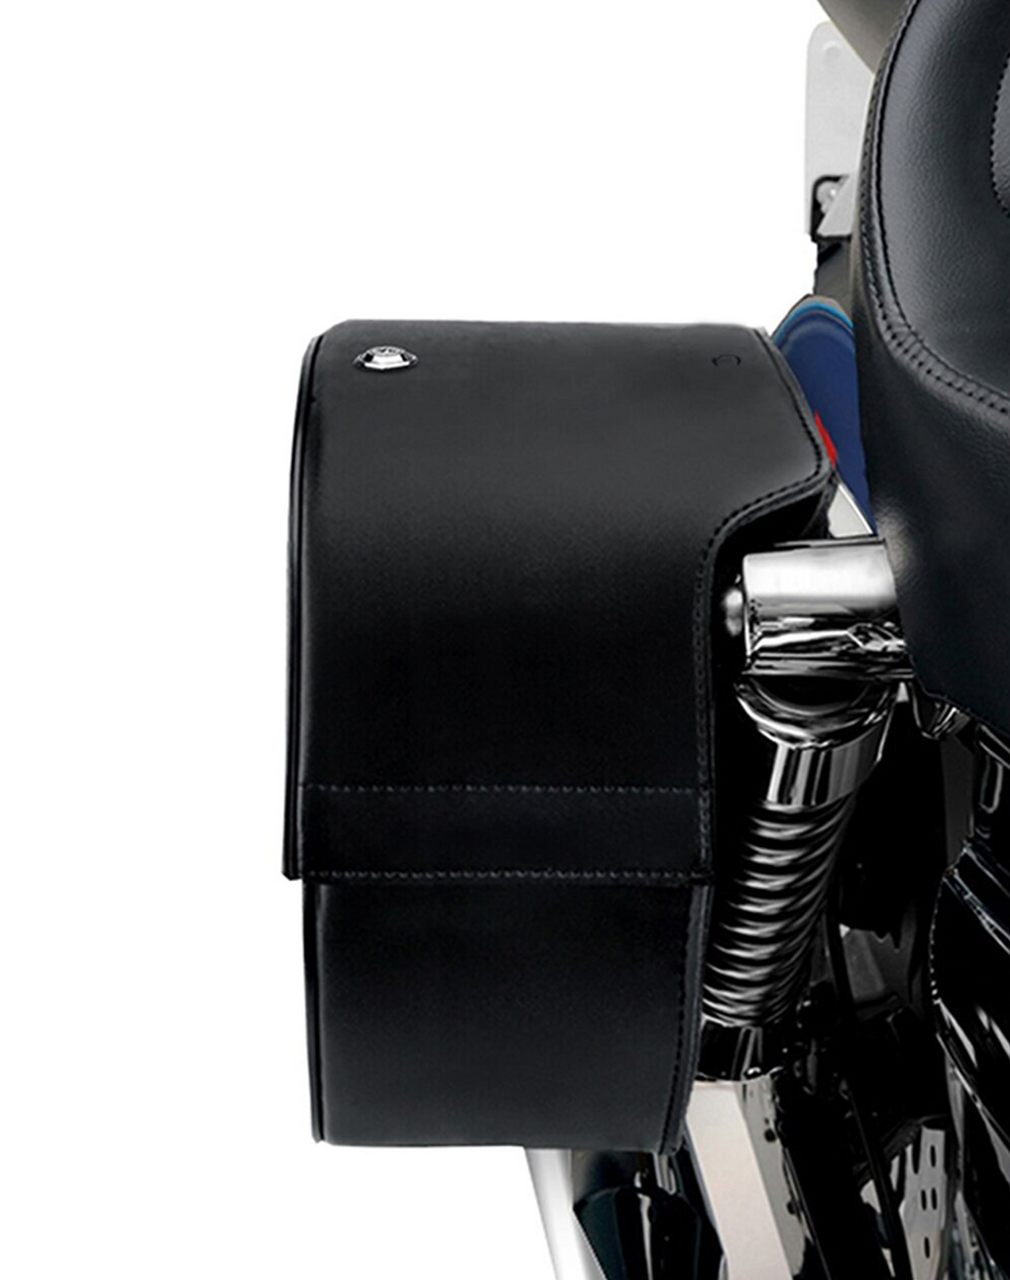 Viking Charger Side Pocket Large With Shock Cutout Motorcycle Saddlebags For Harley Dyna Low Rider FXDL Shock Cutout View